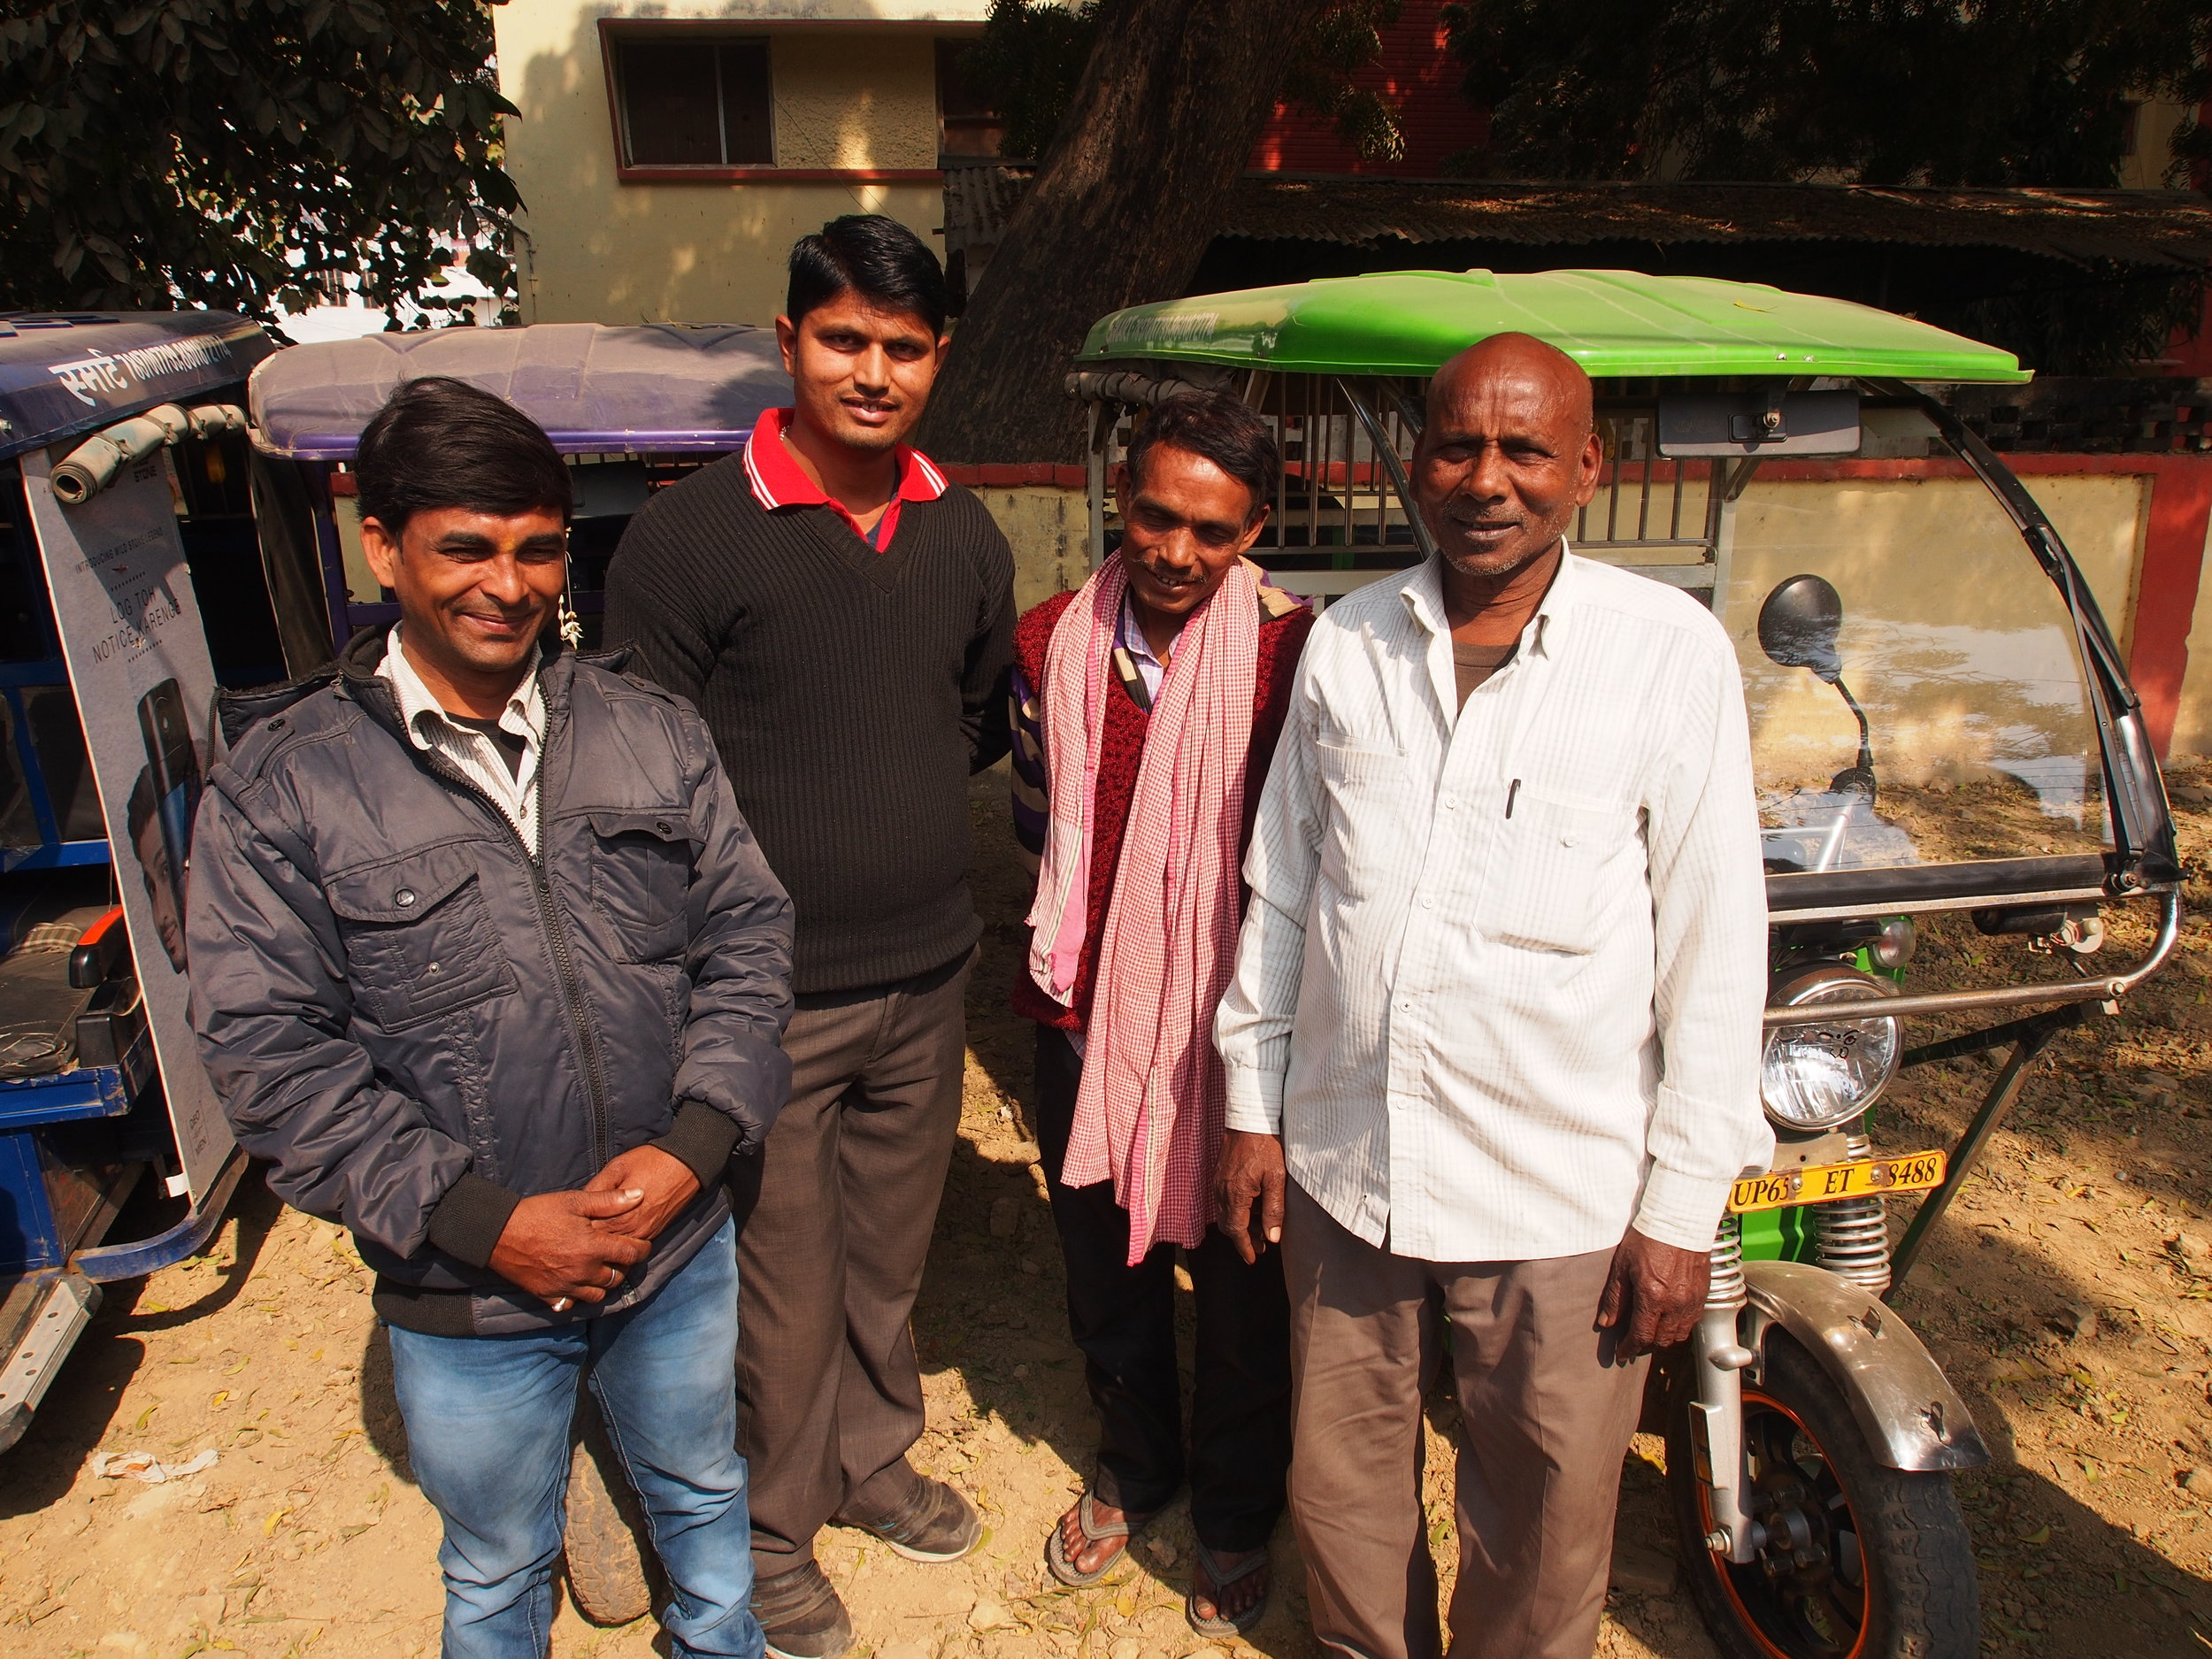 SMV Green is company that connects individuals in poverty with lease-to-own electric rickshaws. Through this model, new rickshaw owners effectively drive themselves out of poverty as new owners of productive assets rather than renting vehicles at exorbitant rates.